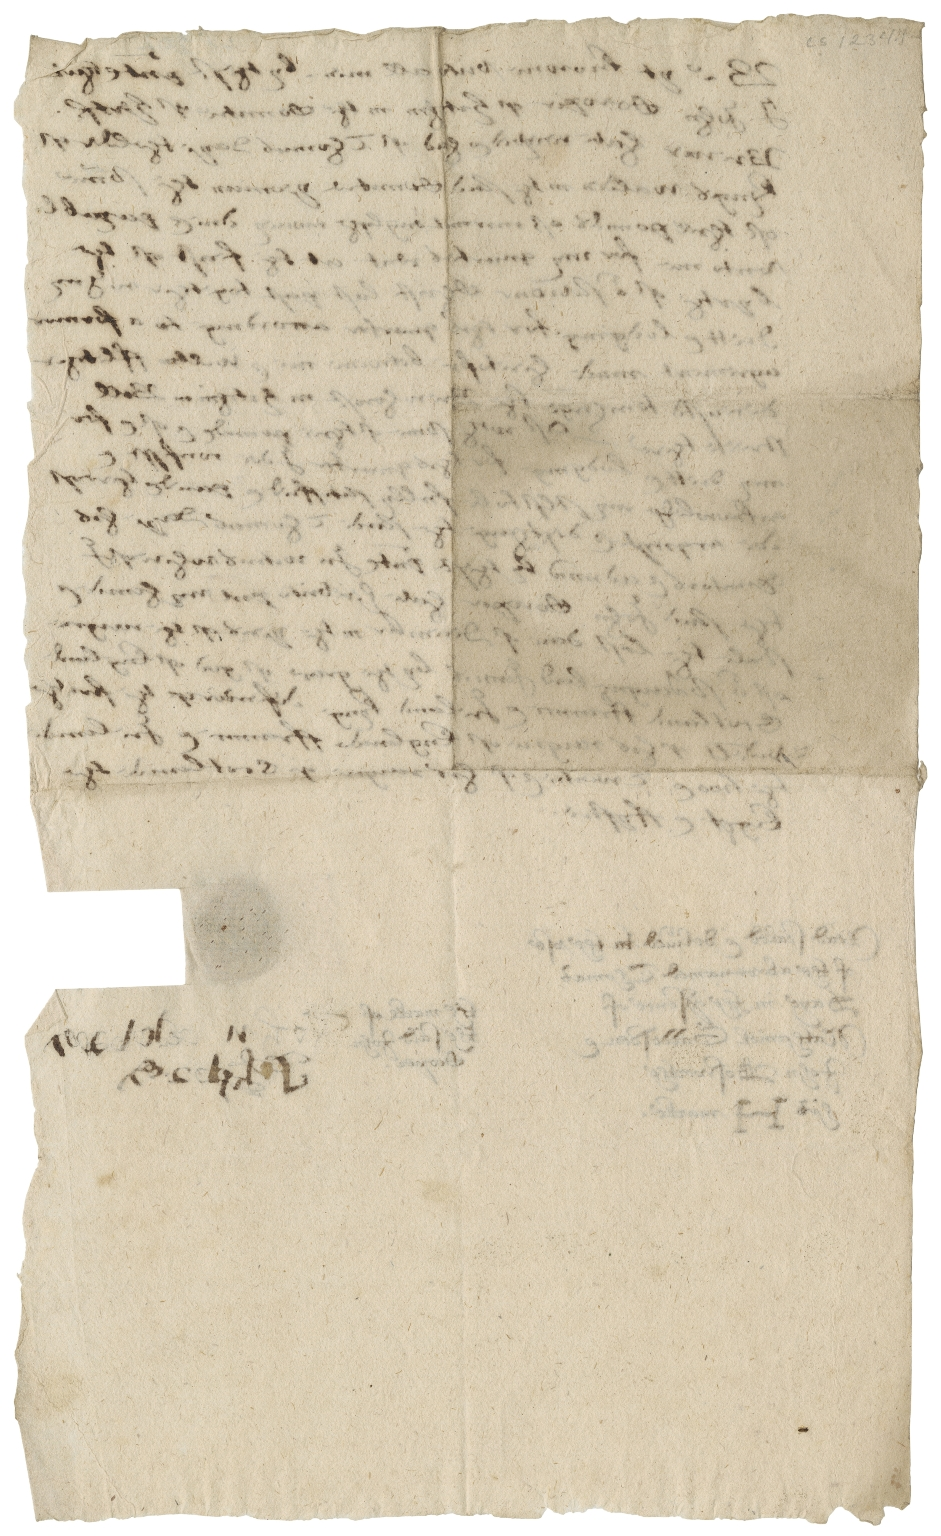 Acquittance from John Cooper, brewer of Hitchin, Hertfordshire, to Thomas Day the elder of King's Walden, Hertfordshire